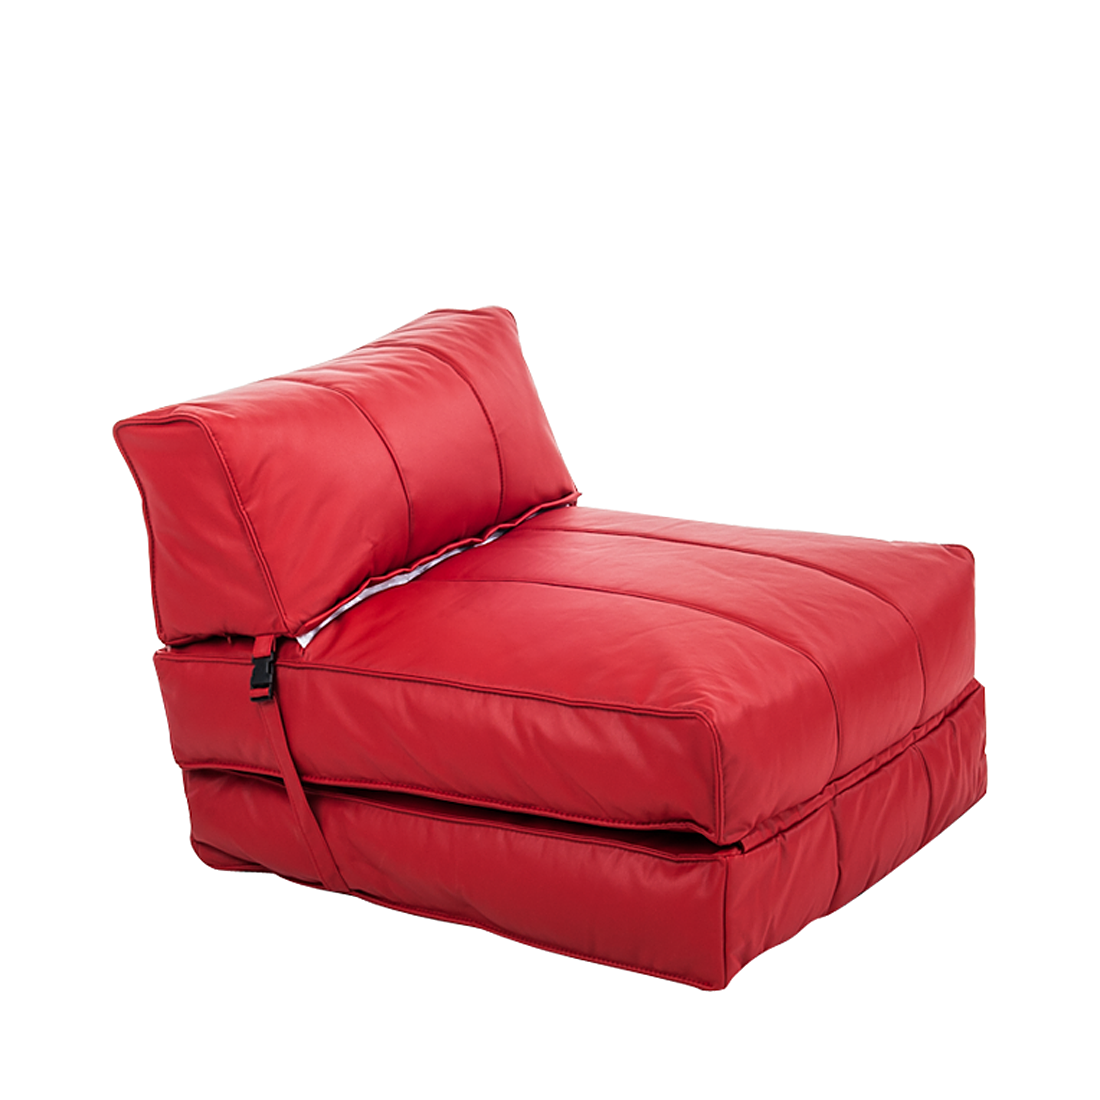 schlafsessel lederoptik rot g stebett klappsessel schlafsofa matratze sessel neu ebay. Black Bedroom Furniture Sets. Home Design Ideas